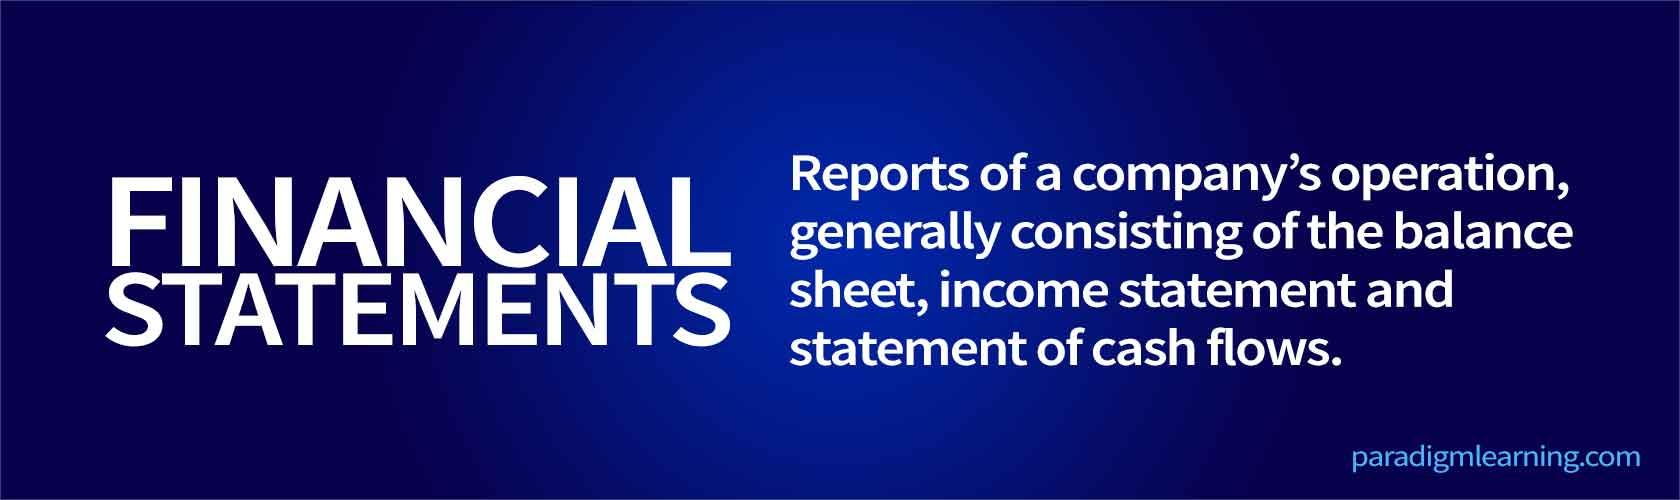 Reports of a company's operation, generally consisting of the balance sheet, income statement and statement of cash flows